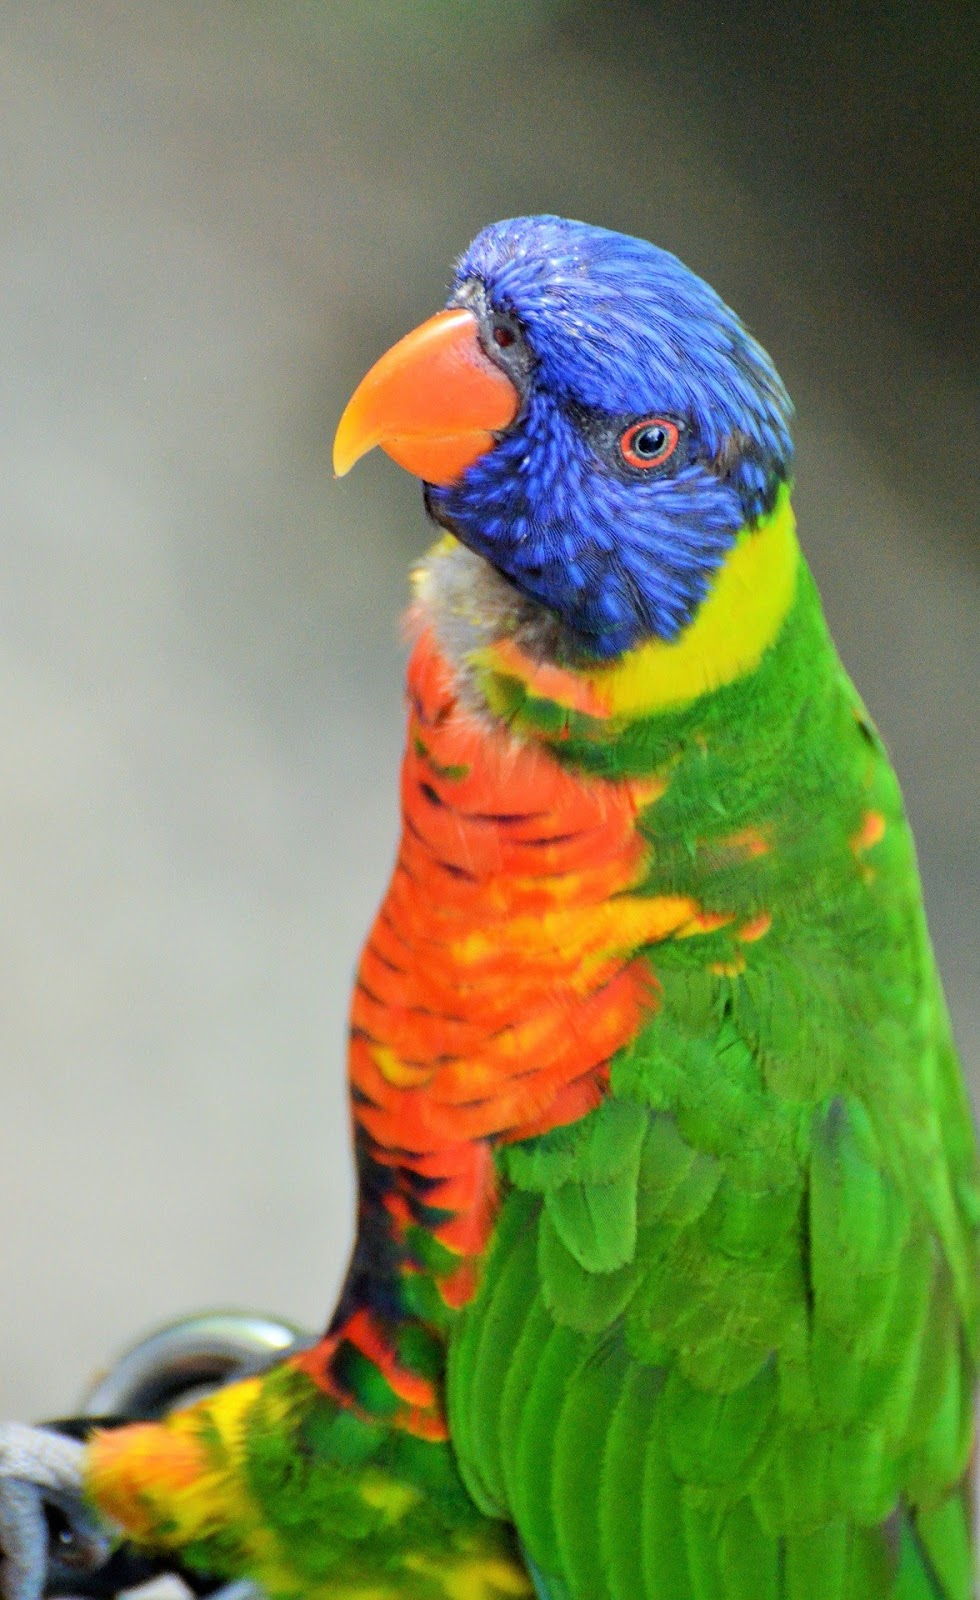 Picture of a beautiful parakeet.